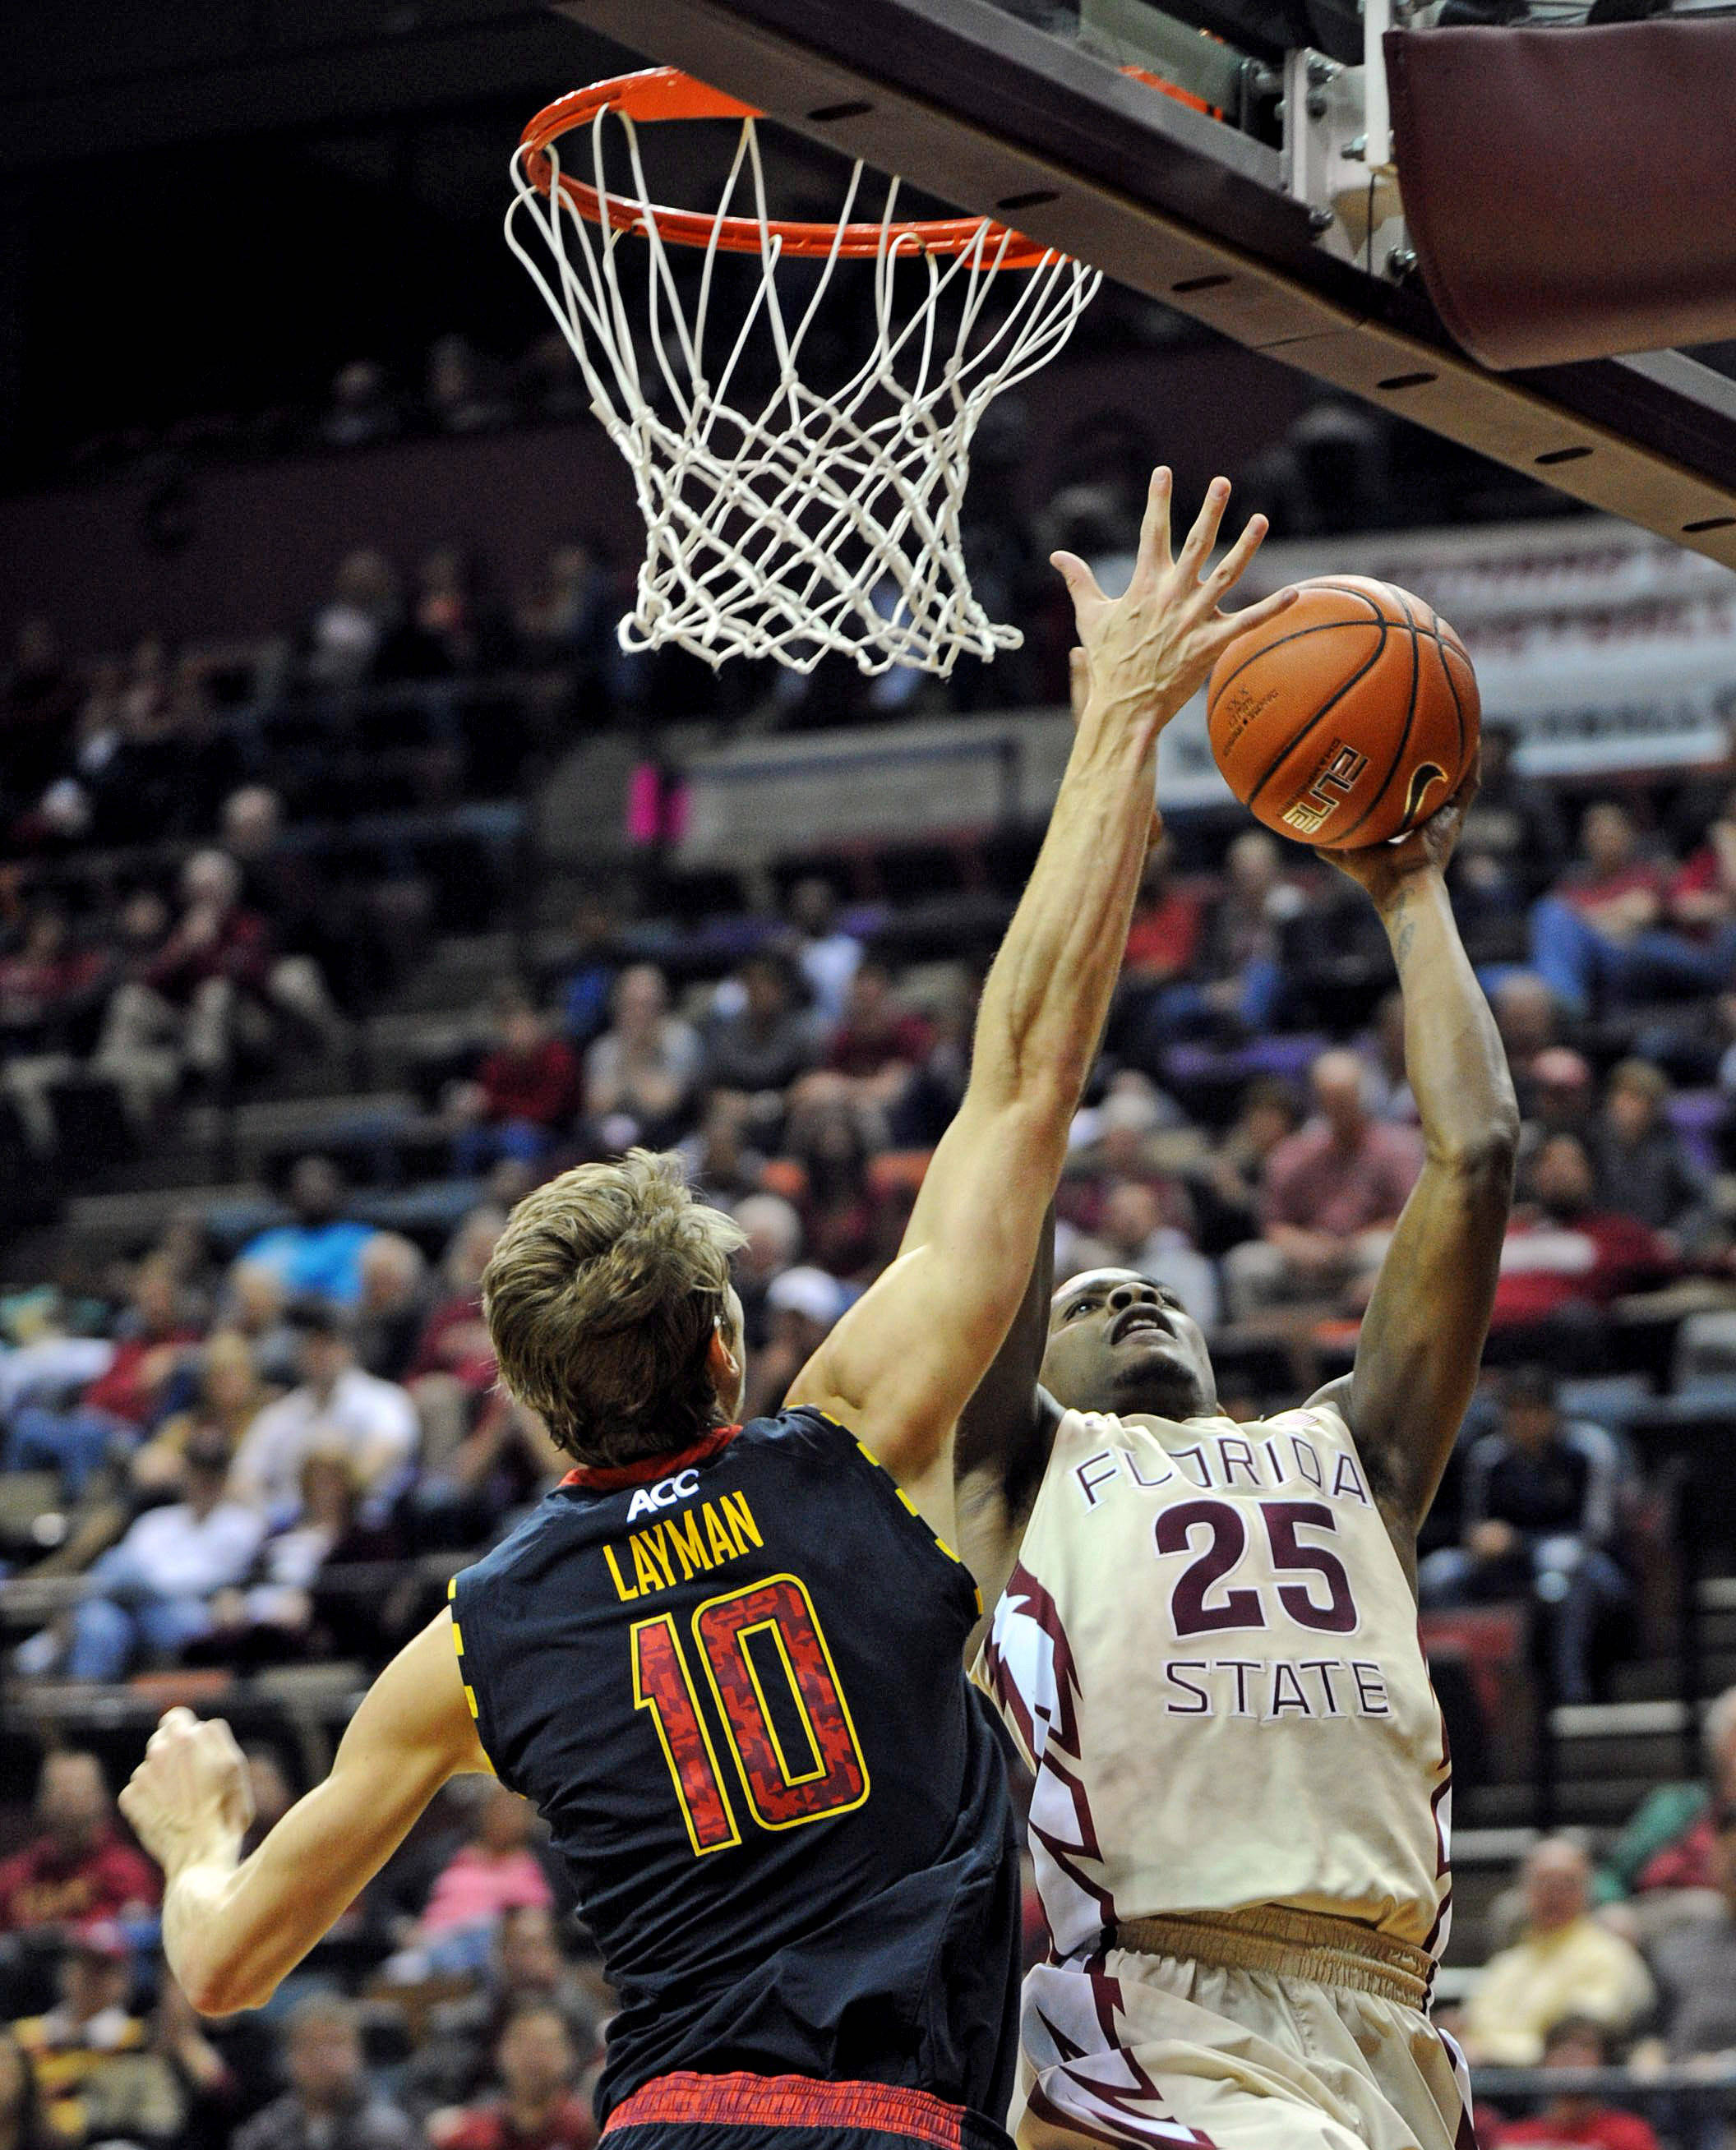 Jan 12, 2014; Tallahassee, FL, USA; Florida State Seminoles guard Aaron Thomas (25) shoots the ball past Maryland Terrapins forward Jake Layman (10) during the first half at Donald L. Tucker Center. Mandatory Credit: Melina Vastola-USA TODAY Sports